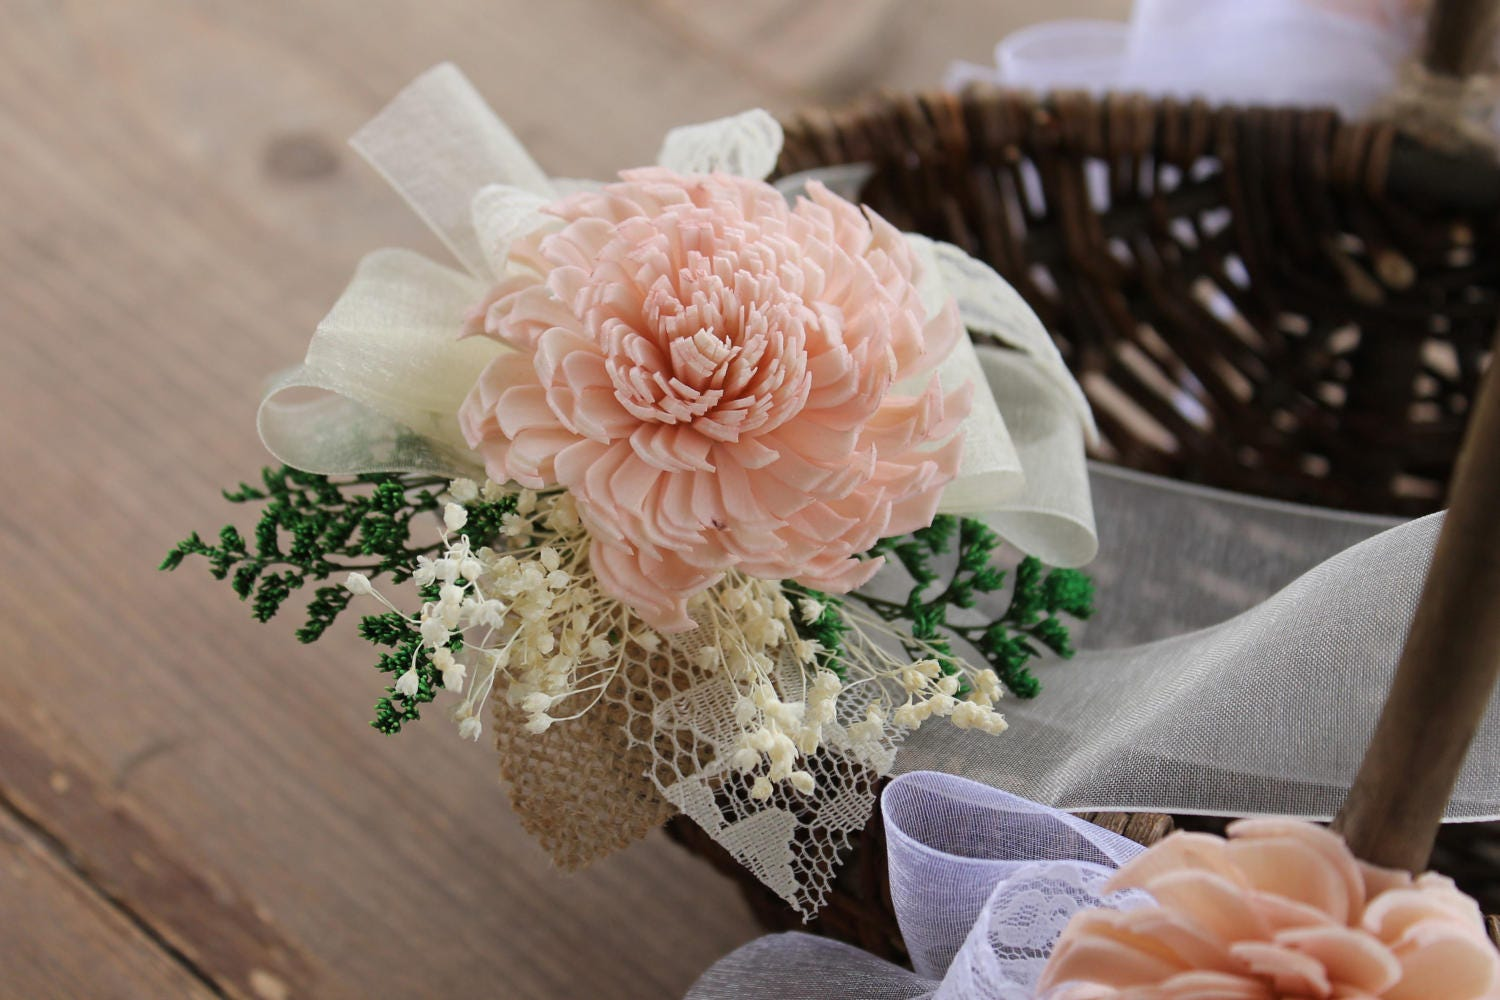 Pink flower corsage image collections flower decoration ideas pink flower corsage images flower decoration ideas blush pink peti sola wrist corsage sola flower corsage mightylinksfo